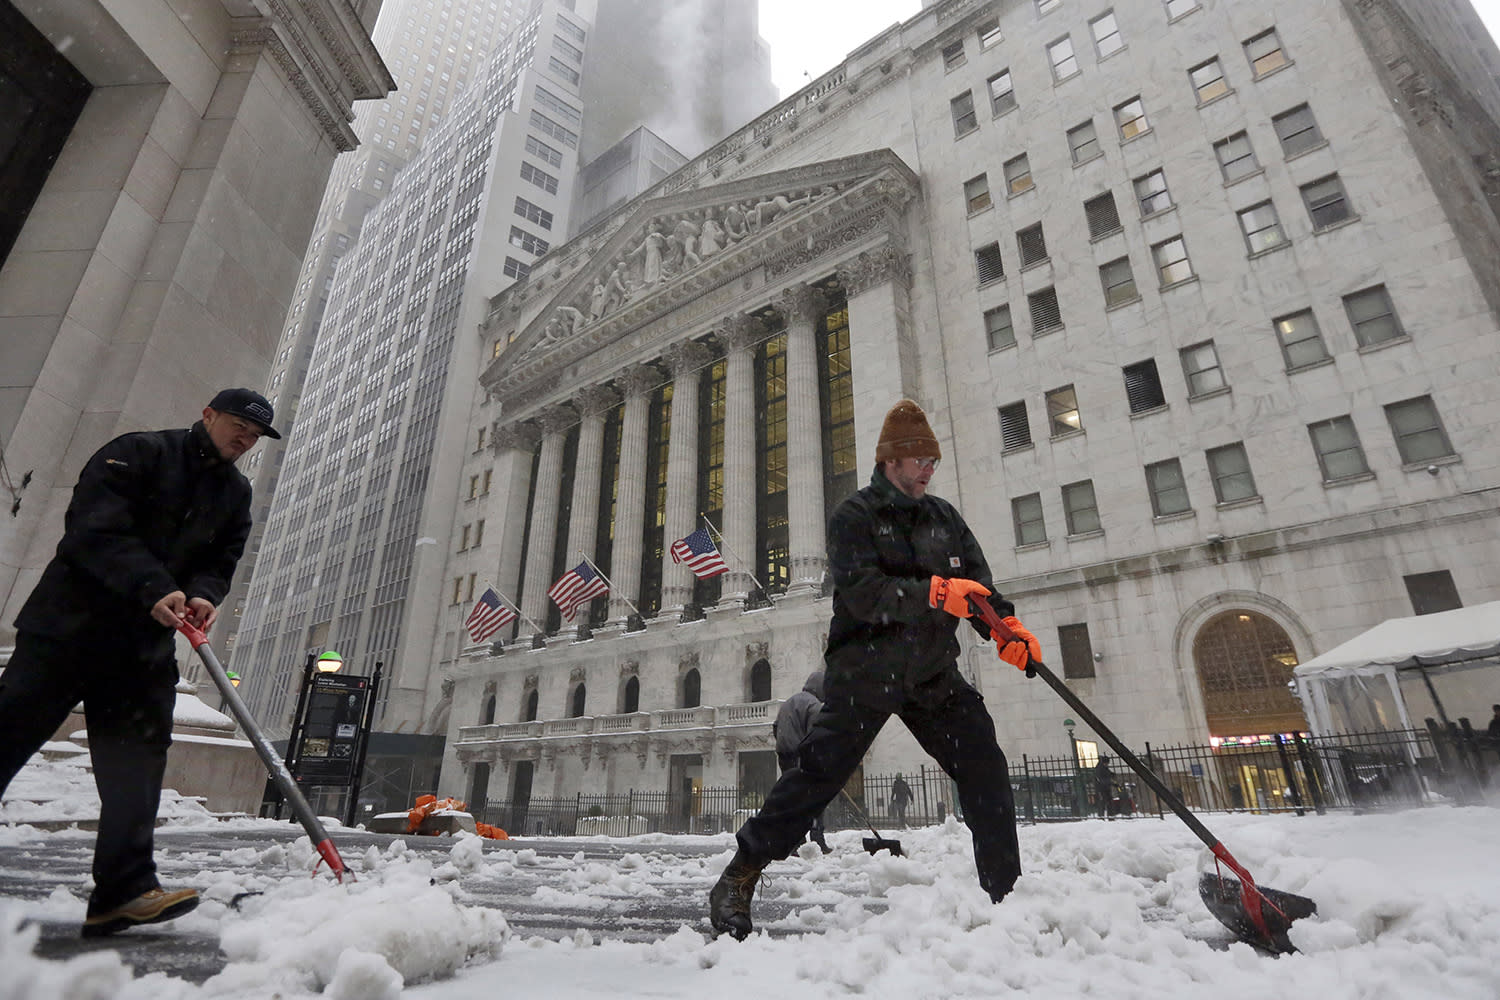 <p>Snow is shoveled from a sidewalk adjacent to the New York Stock Exchange, Tuesday, March 14, 2017. New York Gov. Andrew Cuomo has declared a state of emergency Tuesday for all of New York's 62 counties, including New York City's five boroughs. (Richard Drew/AP) </p>